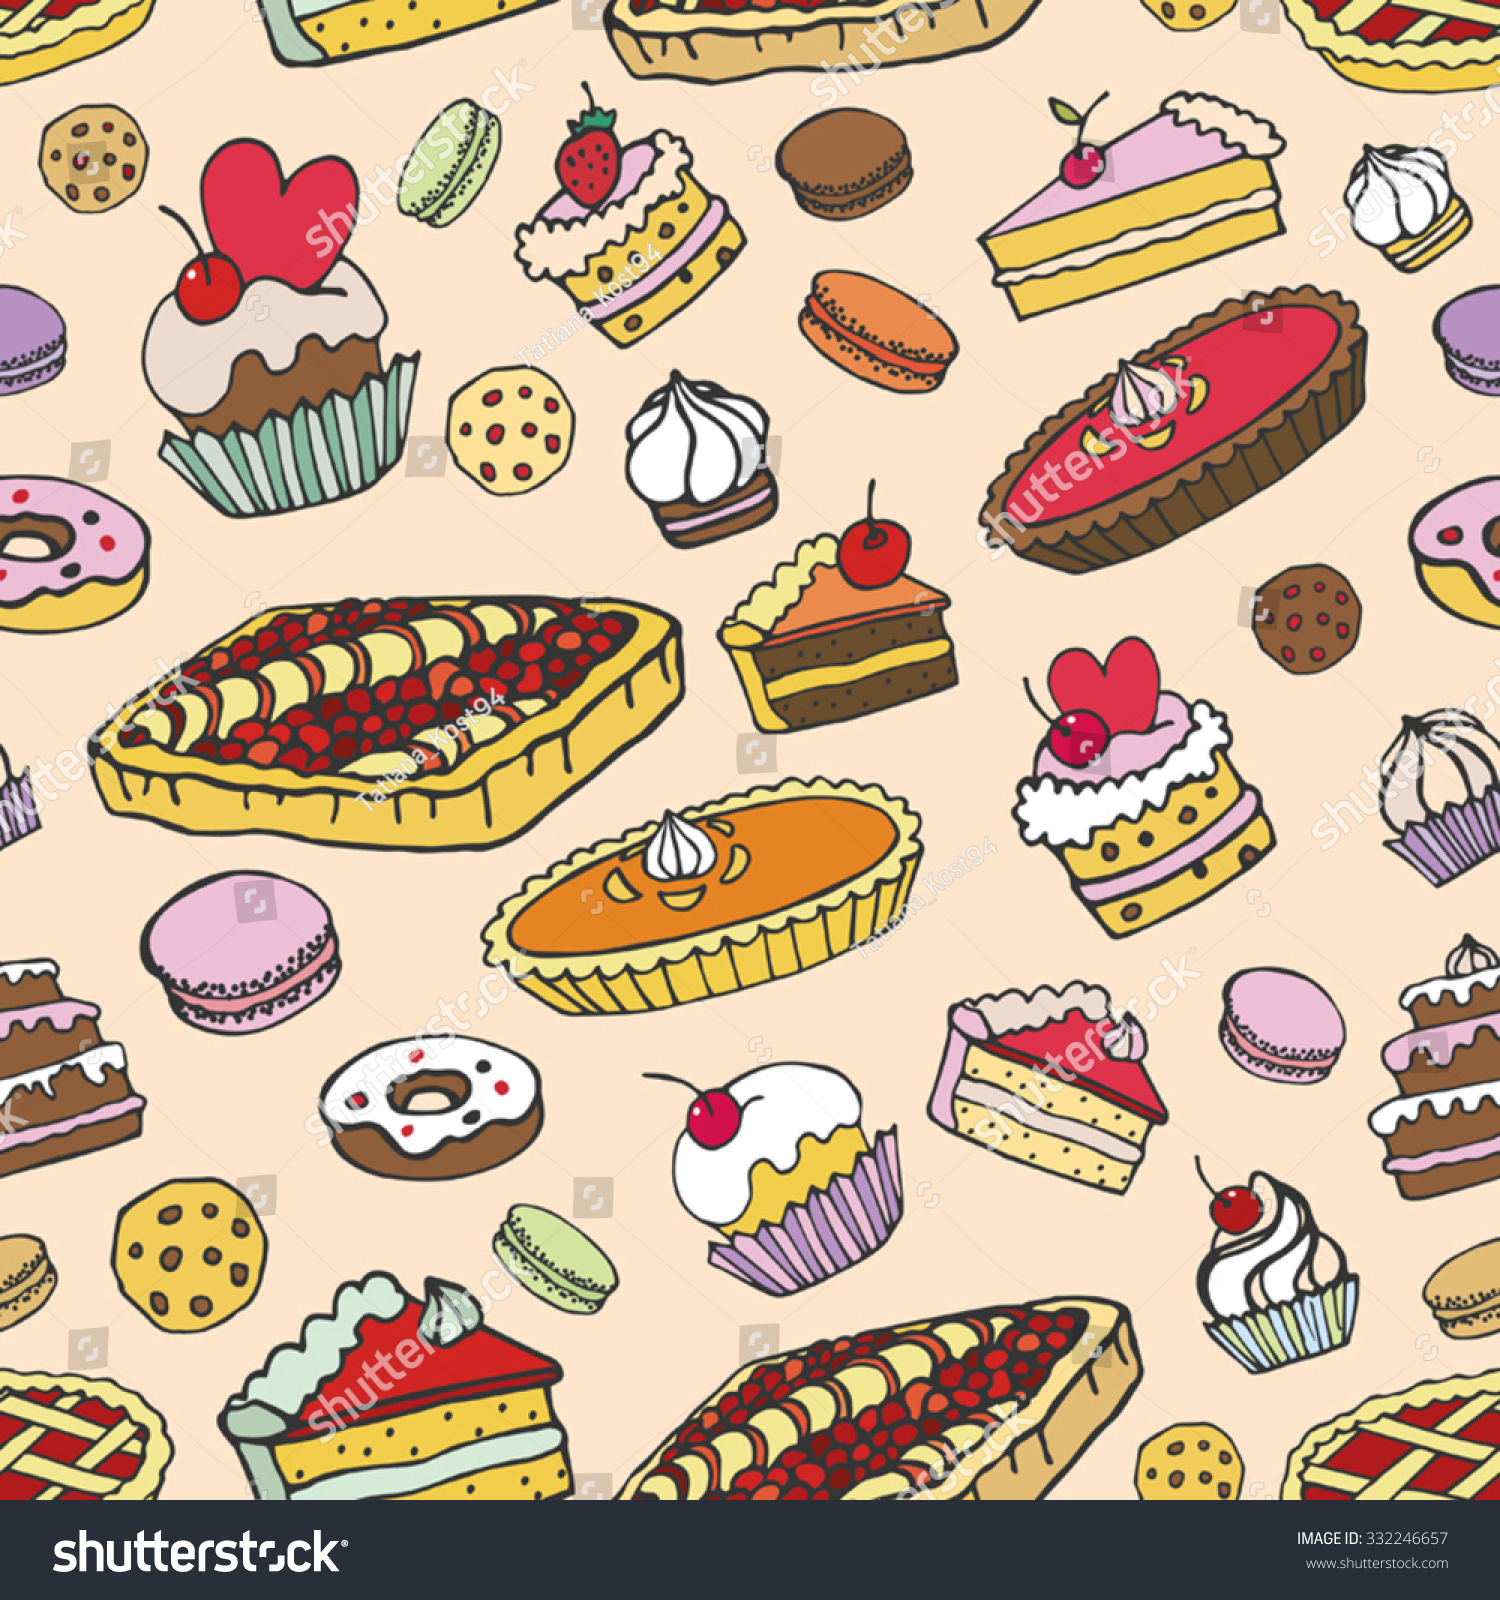 Bakery Backdrop Bakery Themed Seamless Background 1 Stock Vector - Bakery cakes pie dessert pastries seamless pattern doodle vector colored vintage